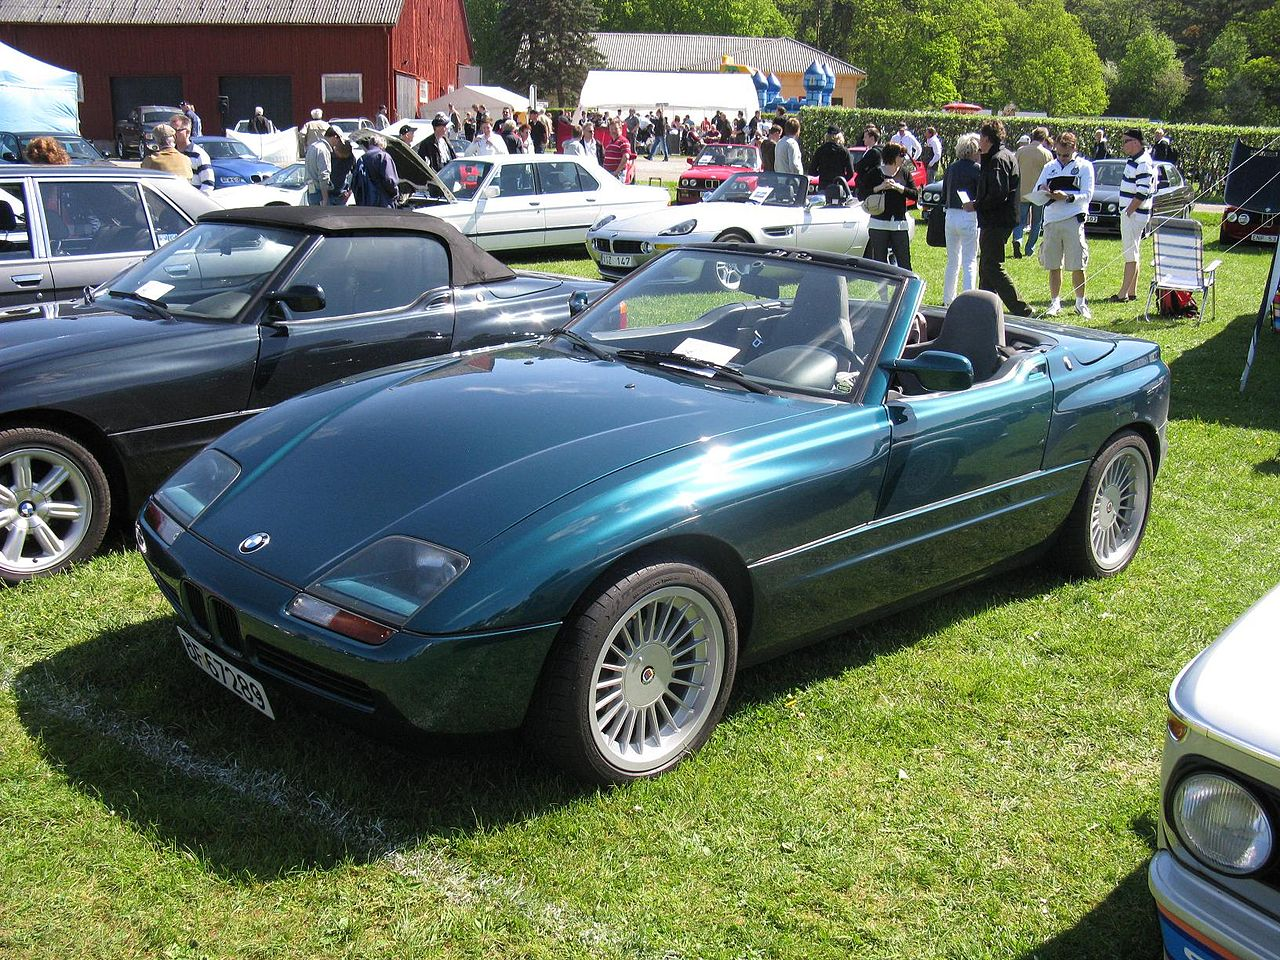 bmw z1 alpina rle file bmw alpina rle z1 5756924704 jpg wikimedia commons bmw z1 alpina rle. Black Bedroom Furniture Sets. Home Design Ideas